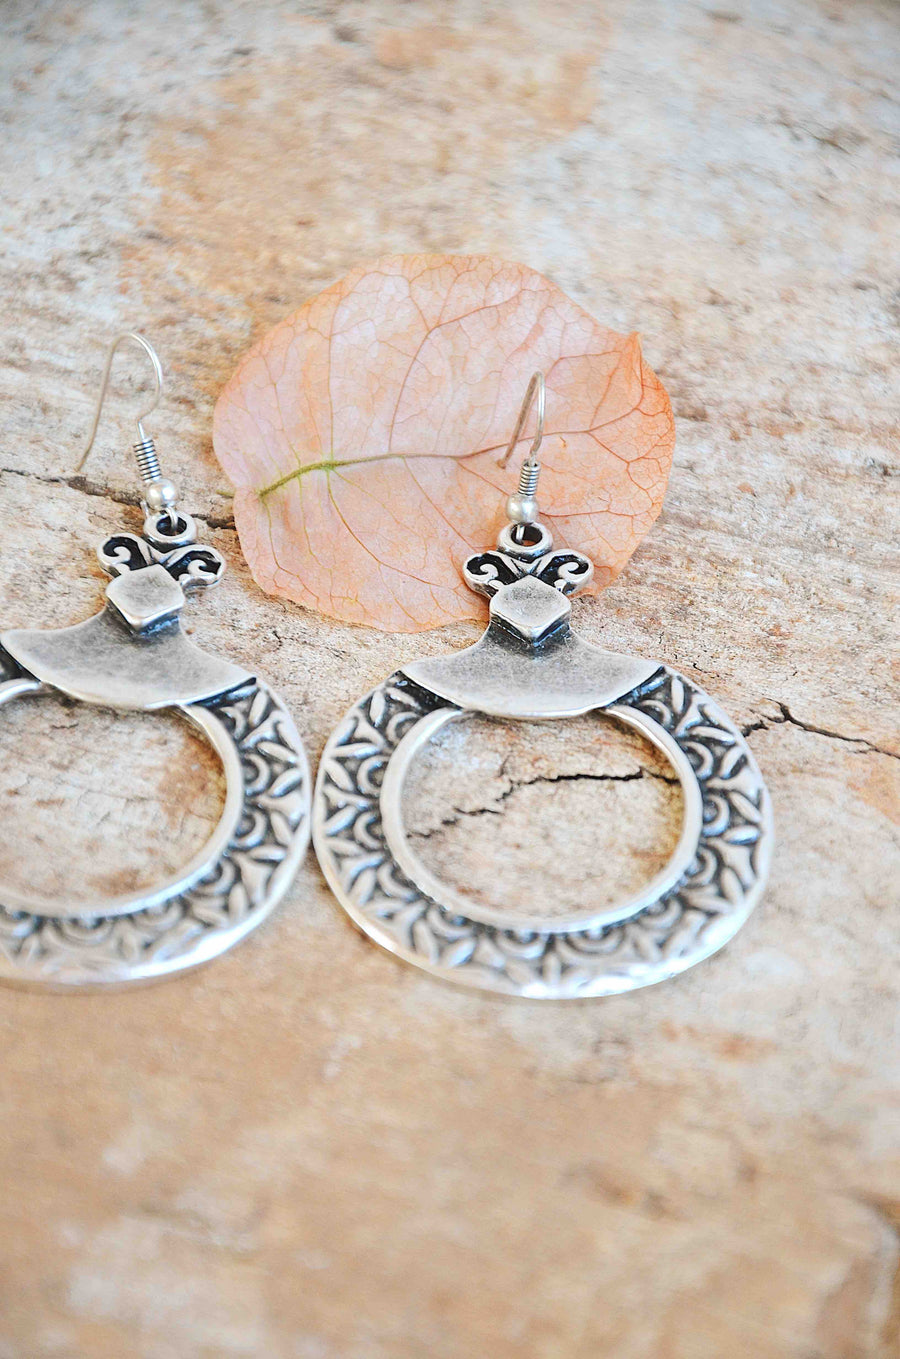 Handmade Silver Hoop Earrings